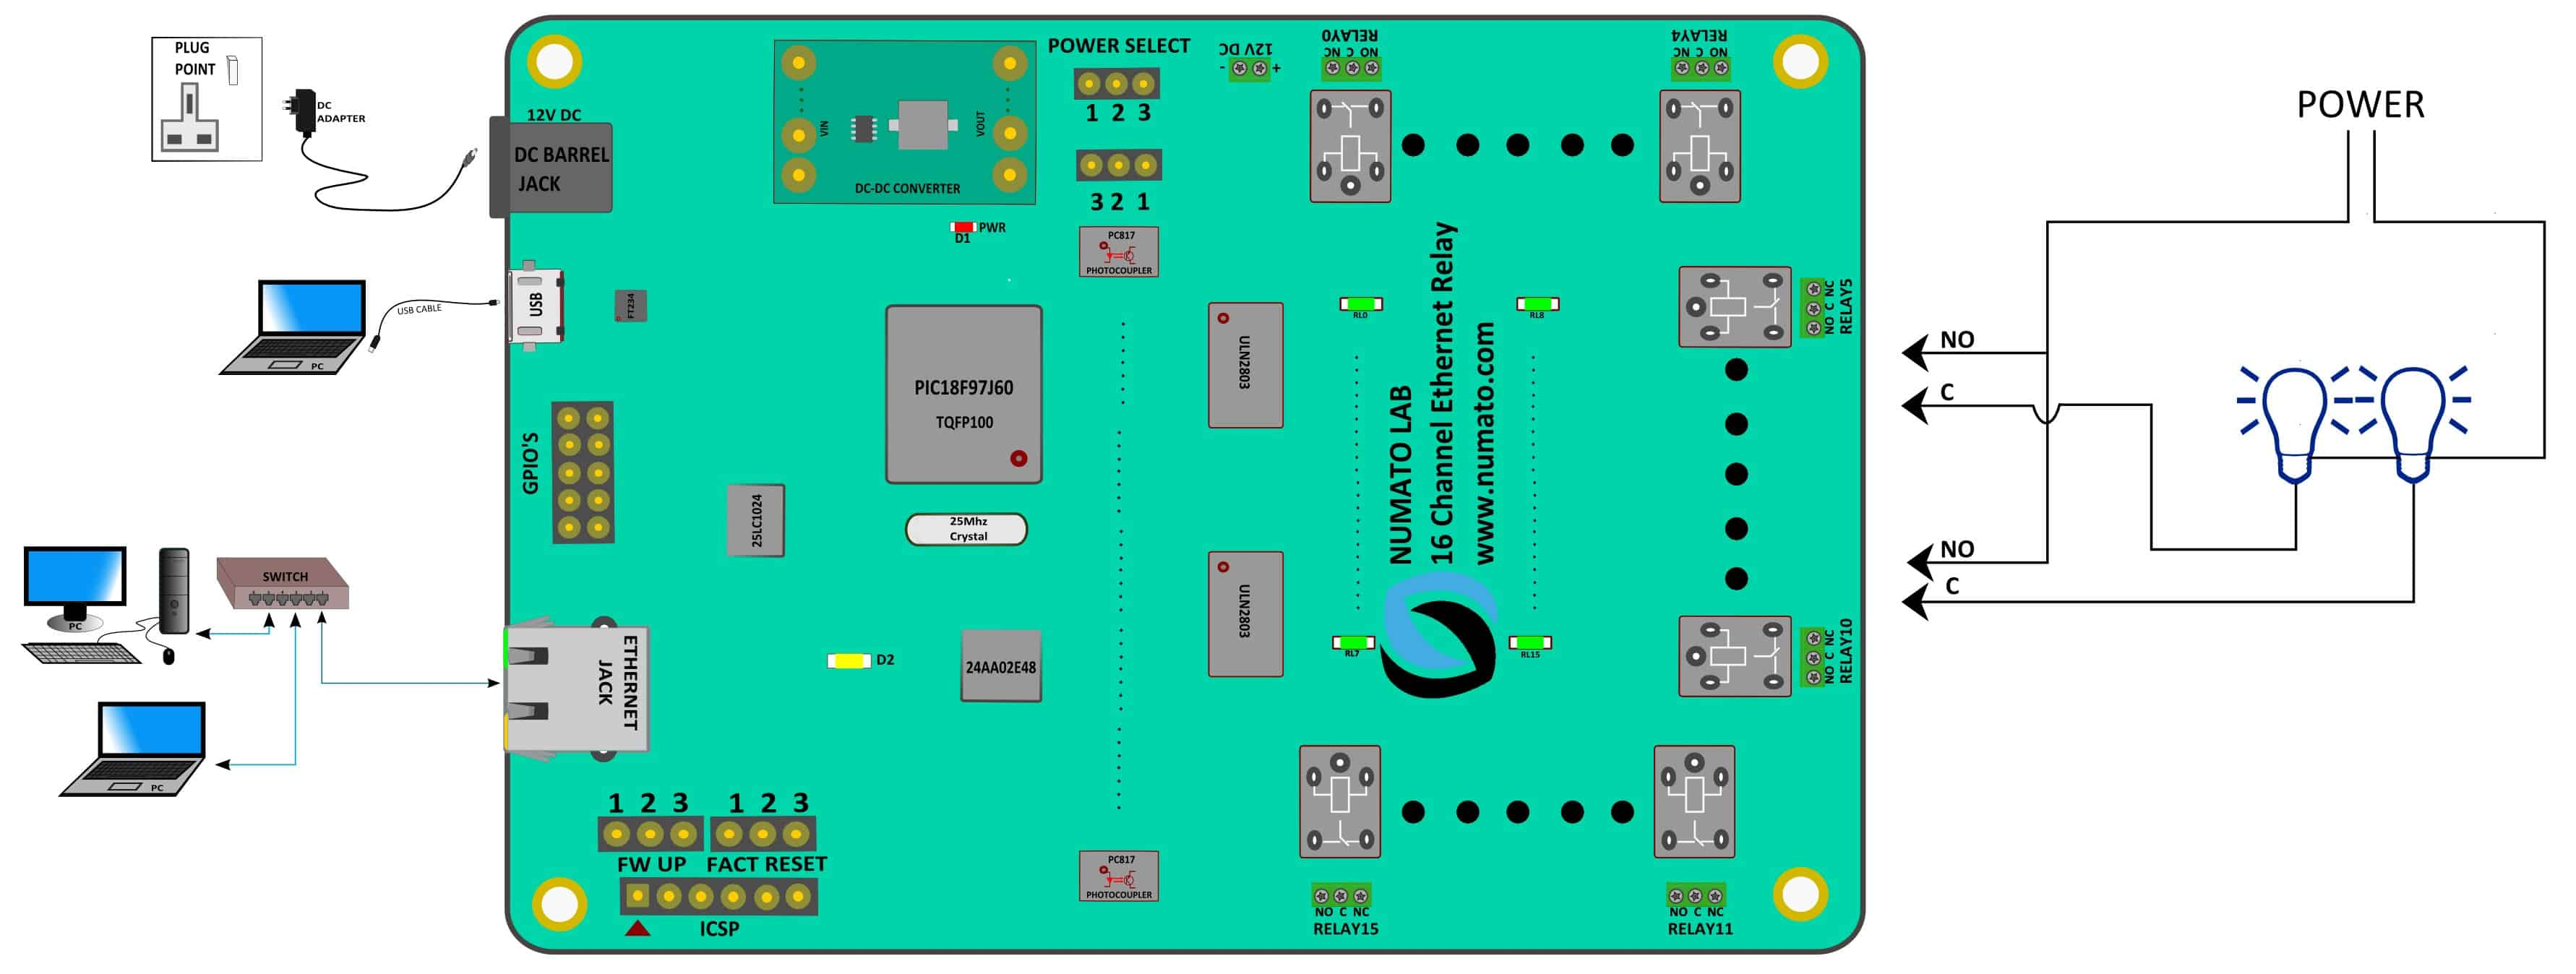 16 Channel Ethernet Relay Module Numato Lab Help Center The Schematics Is Pretty Simple Quotvoltage Selectorquot Switch Above Image Shows Basic Connection Diagram That Can Be Used In Most Of Situations Same For Both Ac And Dc Loads